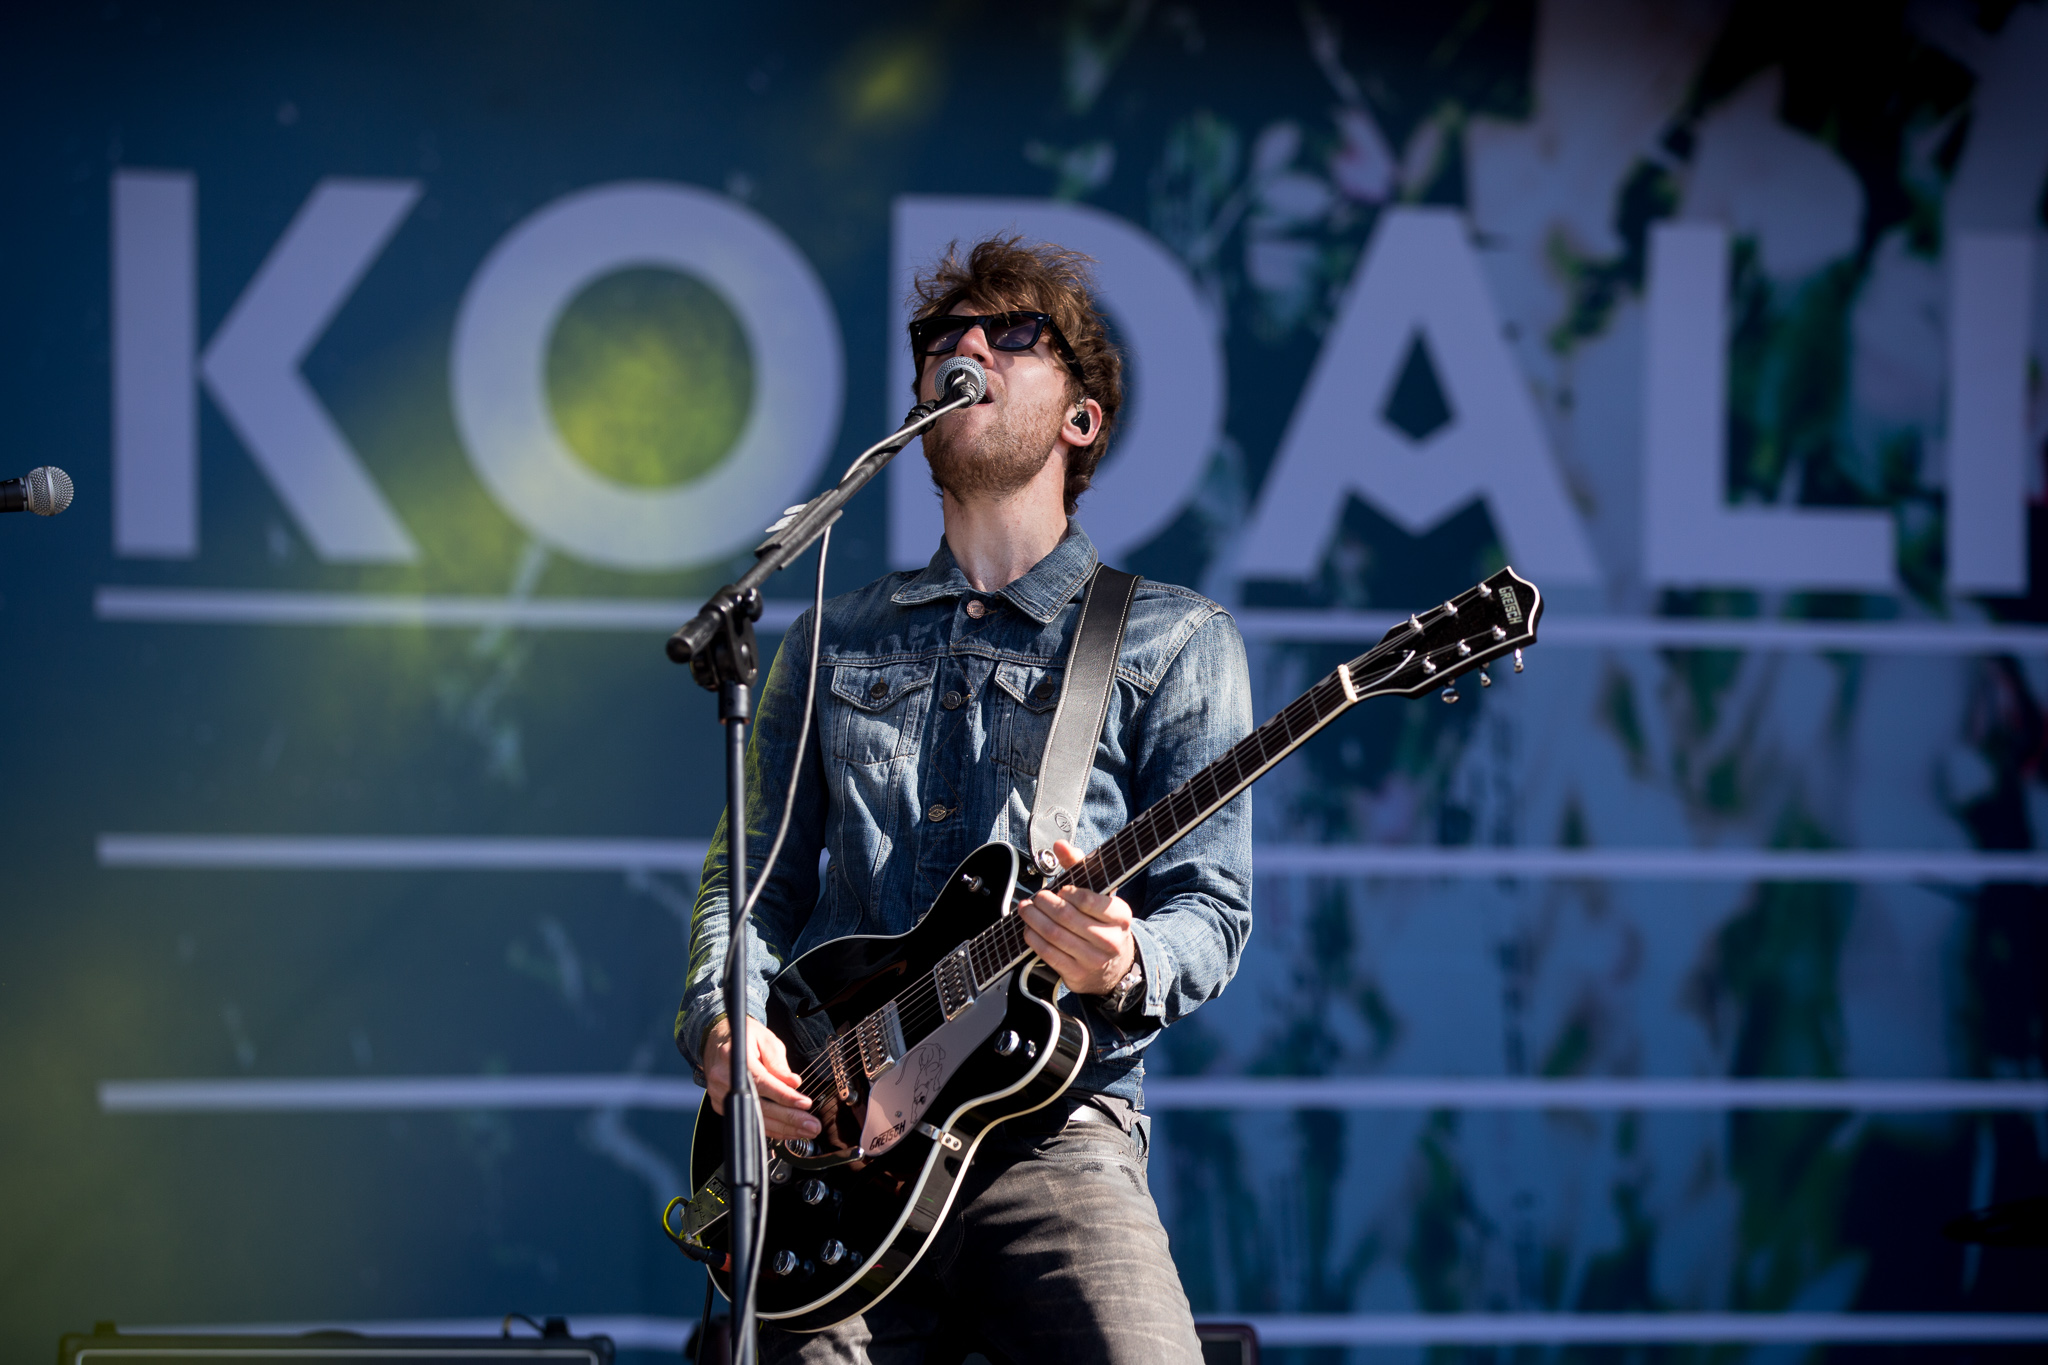 © Open'er Festival - Kodaline perform on the first day of Open'er Festival, Gdynia, Poland_02